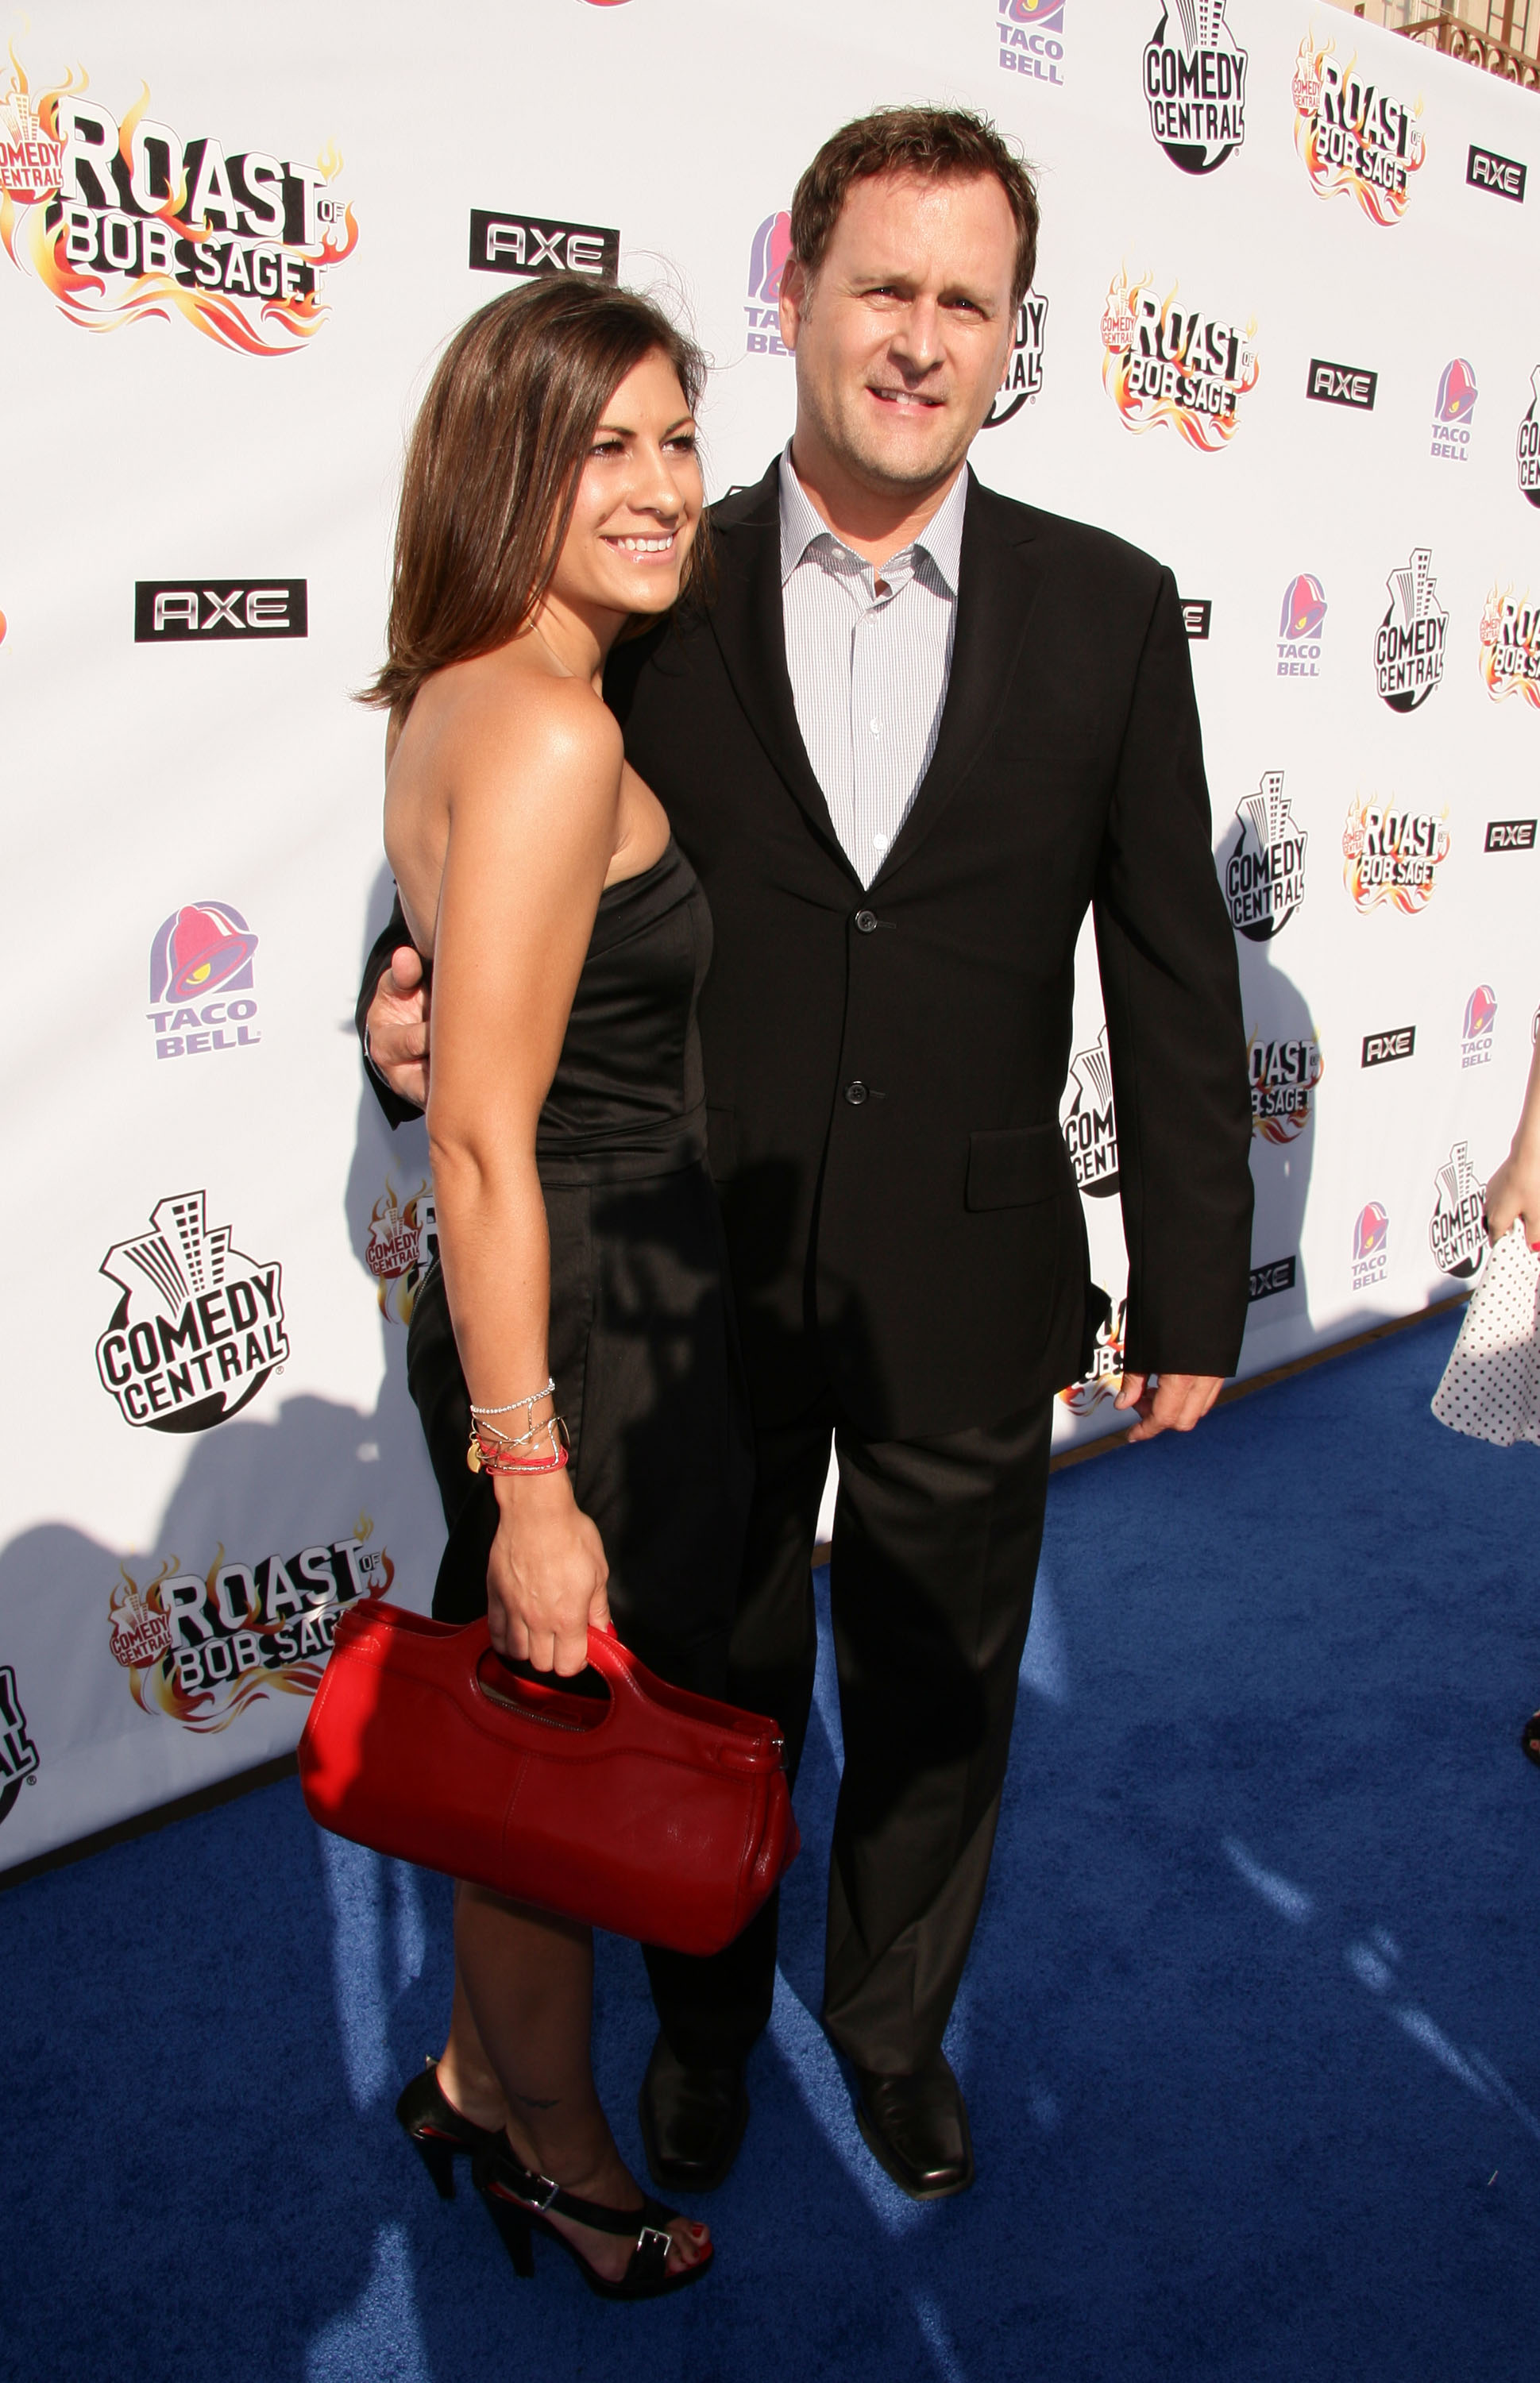 Dave Coulier Marries Melissa Bring In Full House Reunion Themed